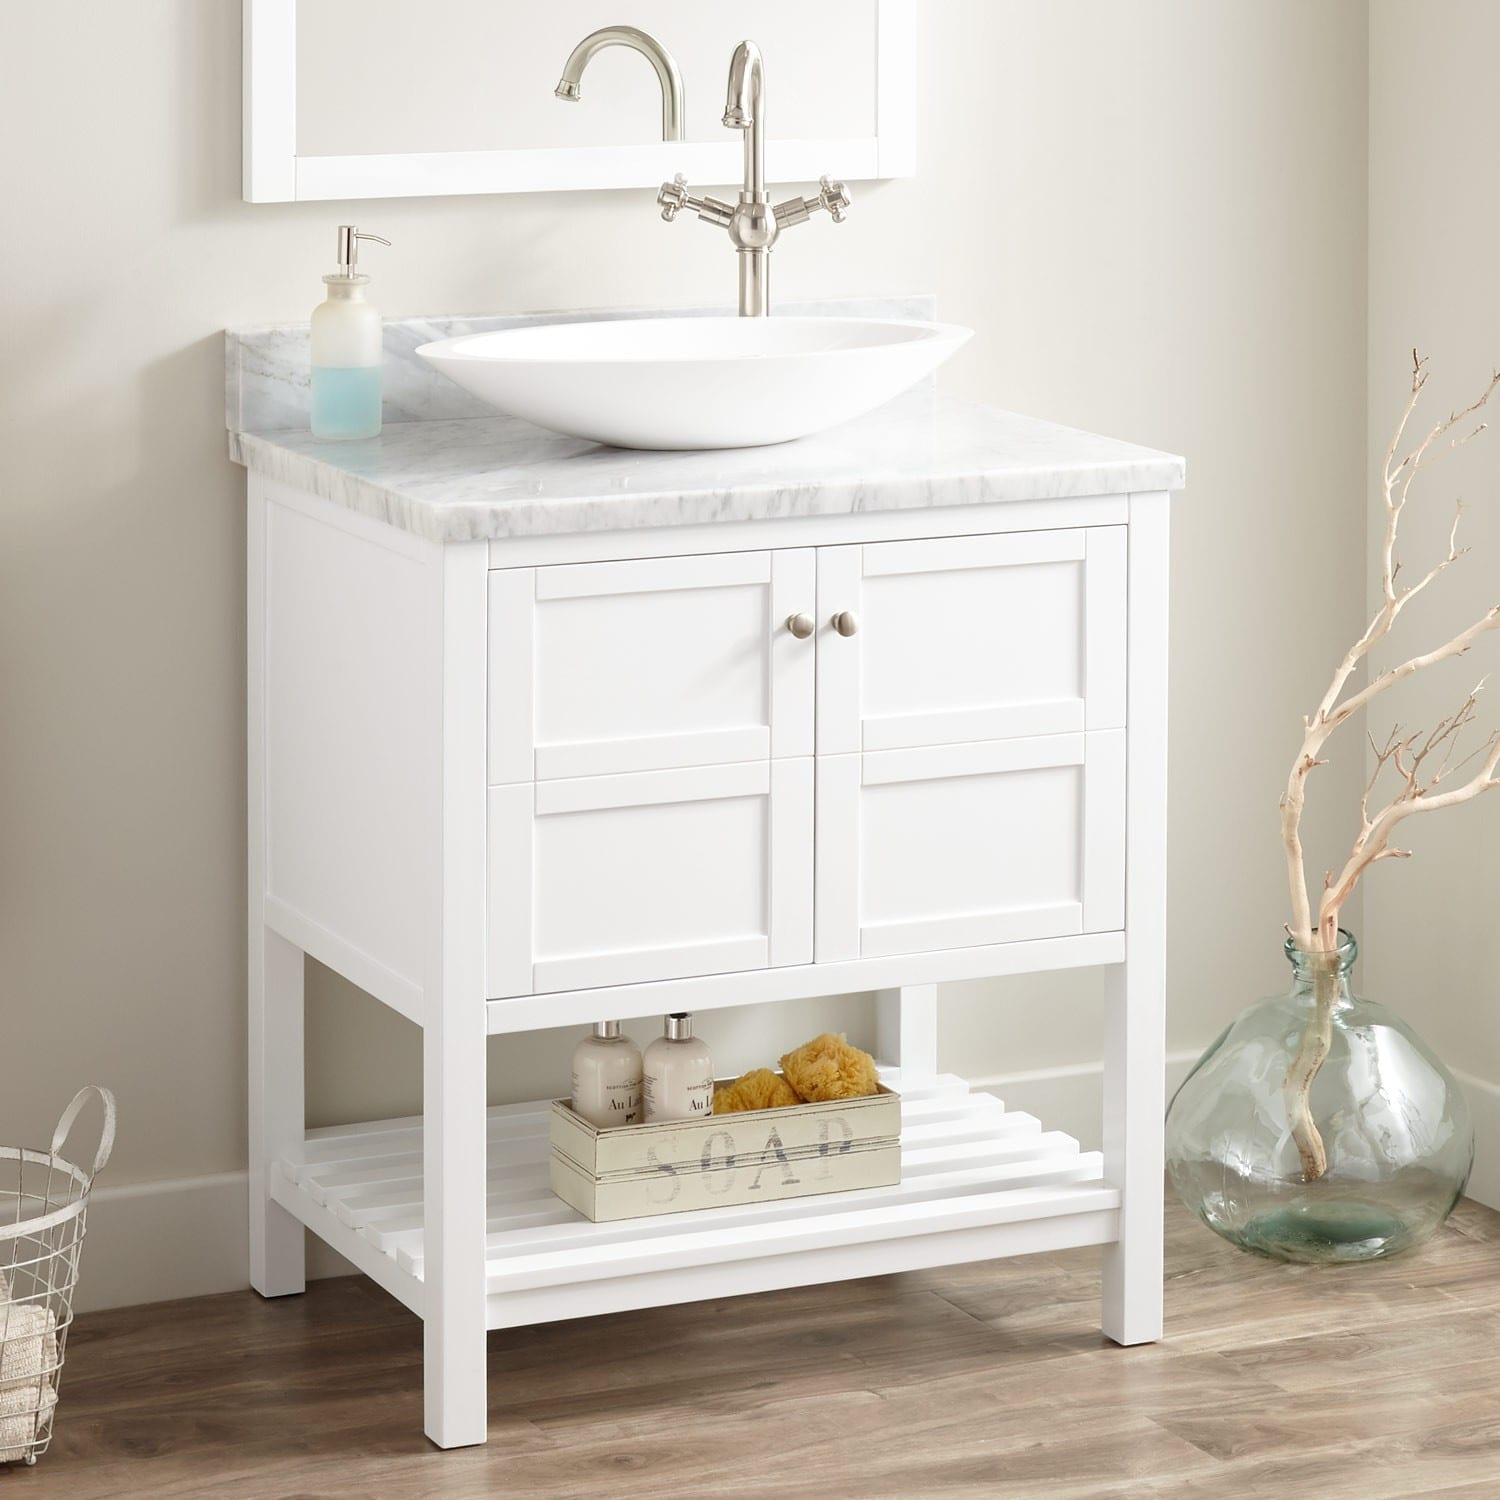 Signature Hardware 435049 White Carrara Marble Everett 30 Single Vanity Set With Solid Wood Cabinet And Marble Vanity Top Right Side Faucet Hole Faucet Com